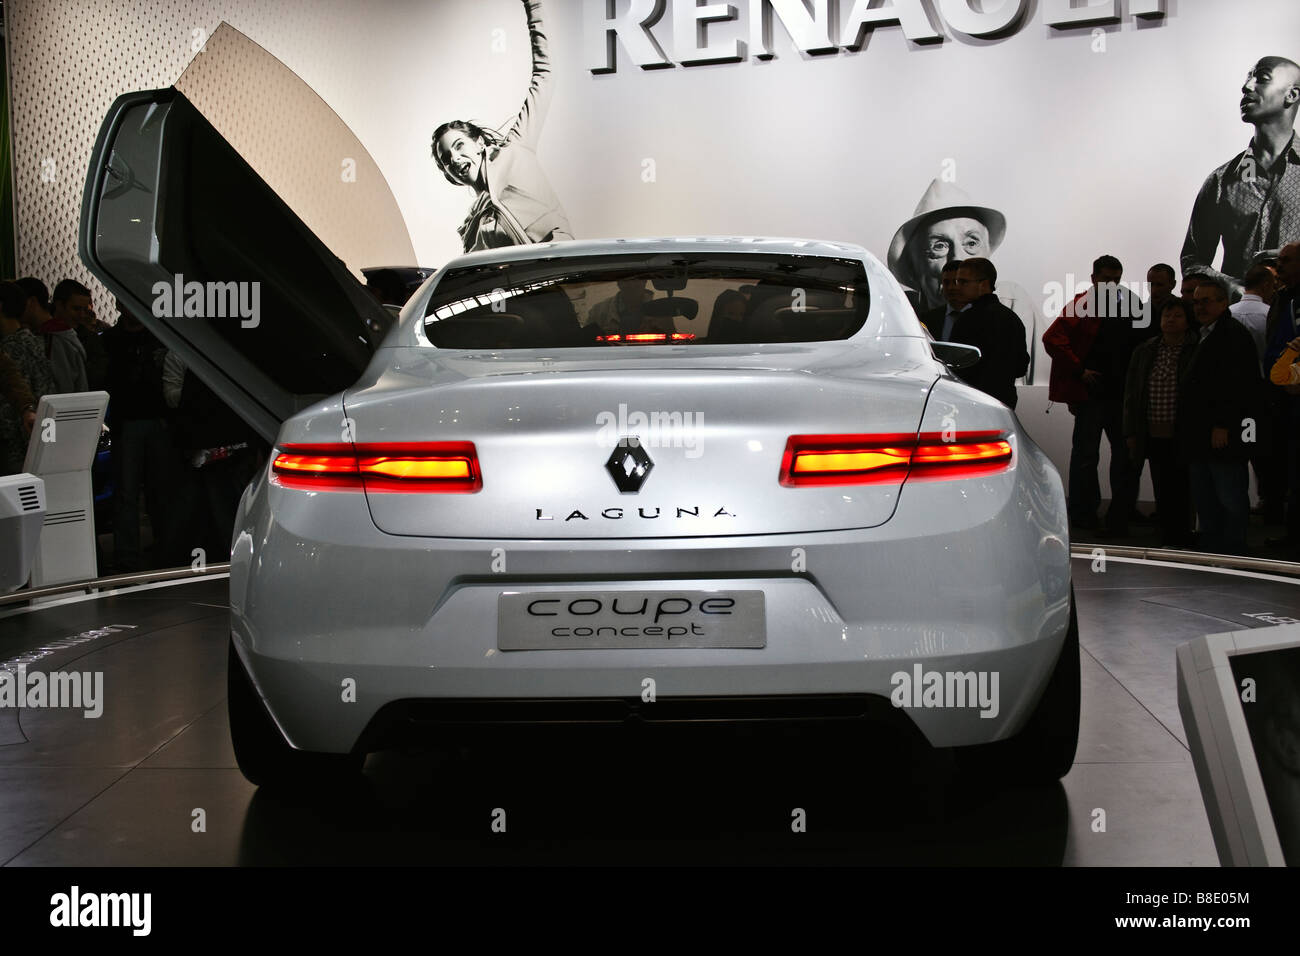 Renault Laguna Coupe at Zagreb Auto Show in Croatia from 28.3.2008. - 06. 04. 2008. - Stock Image